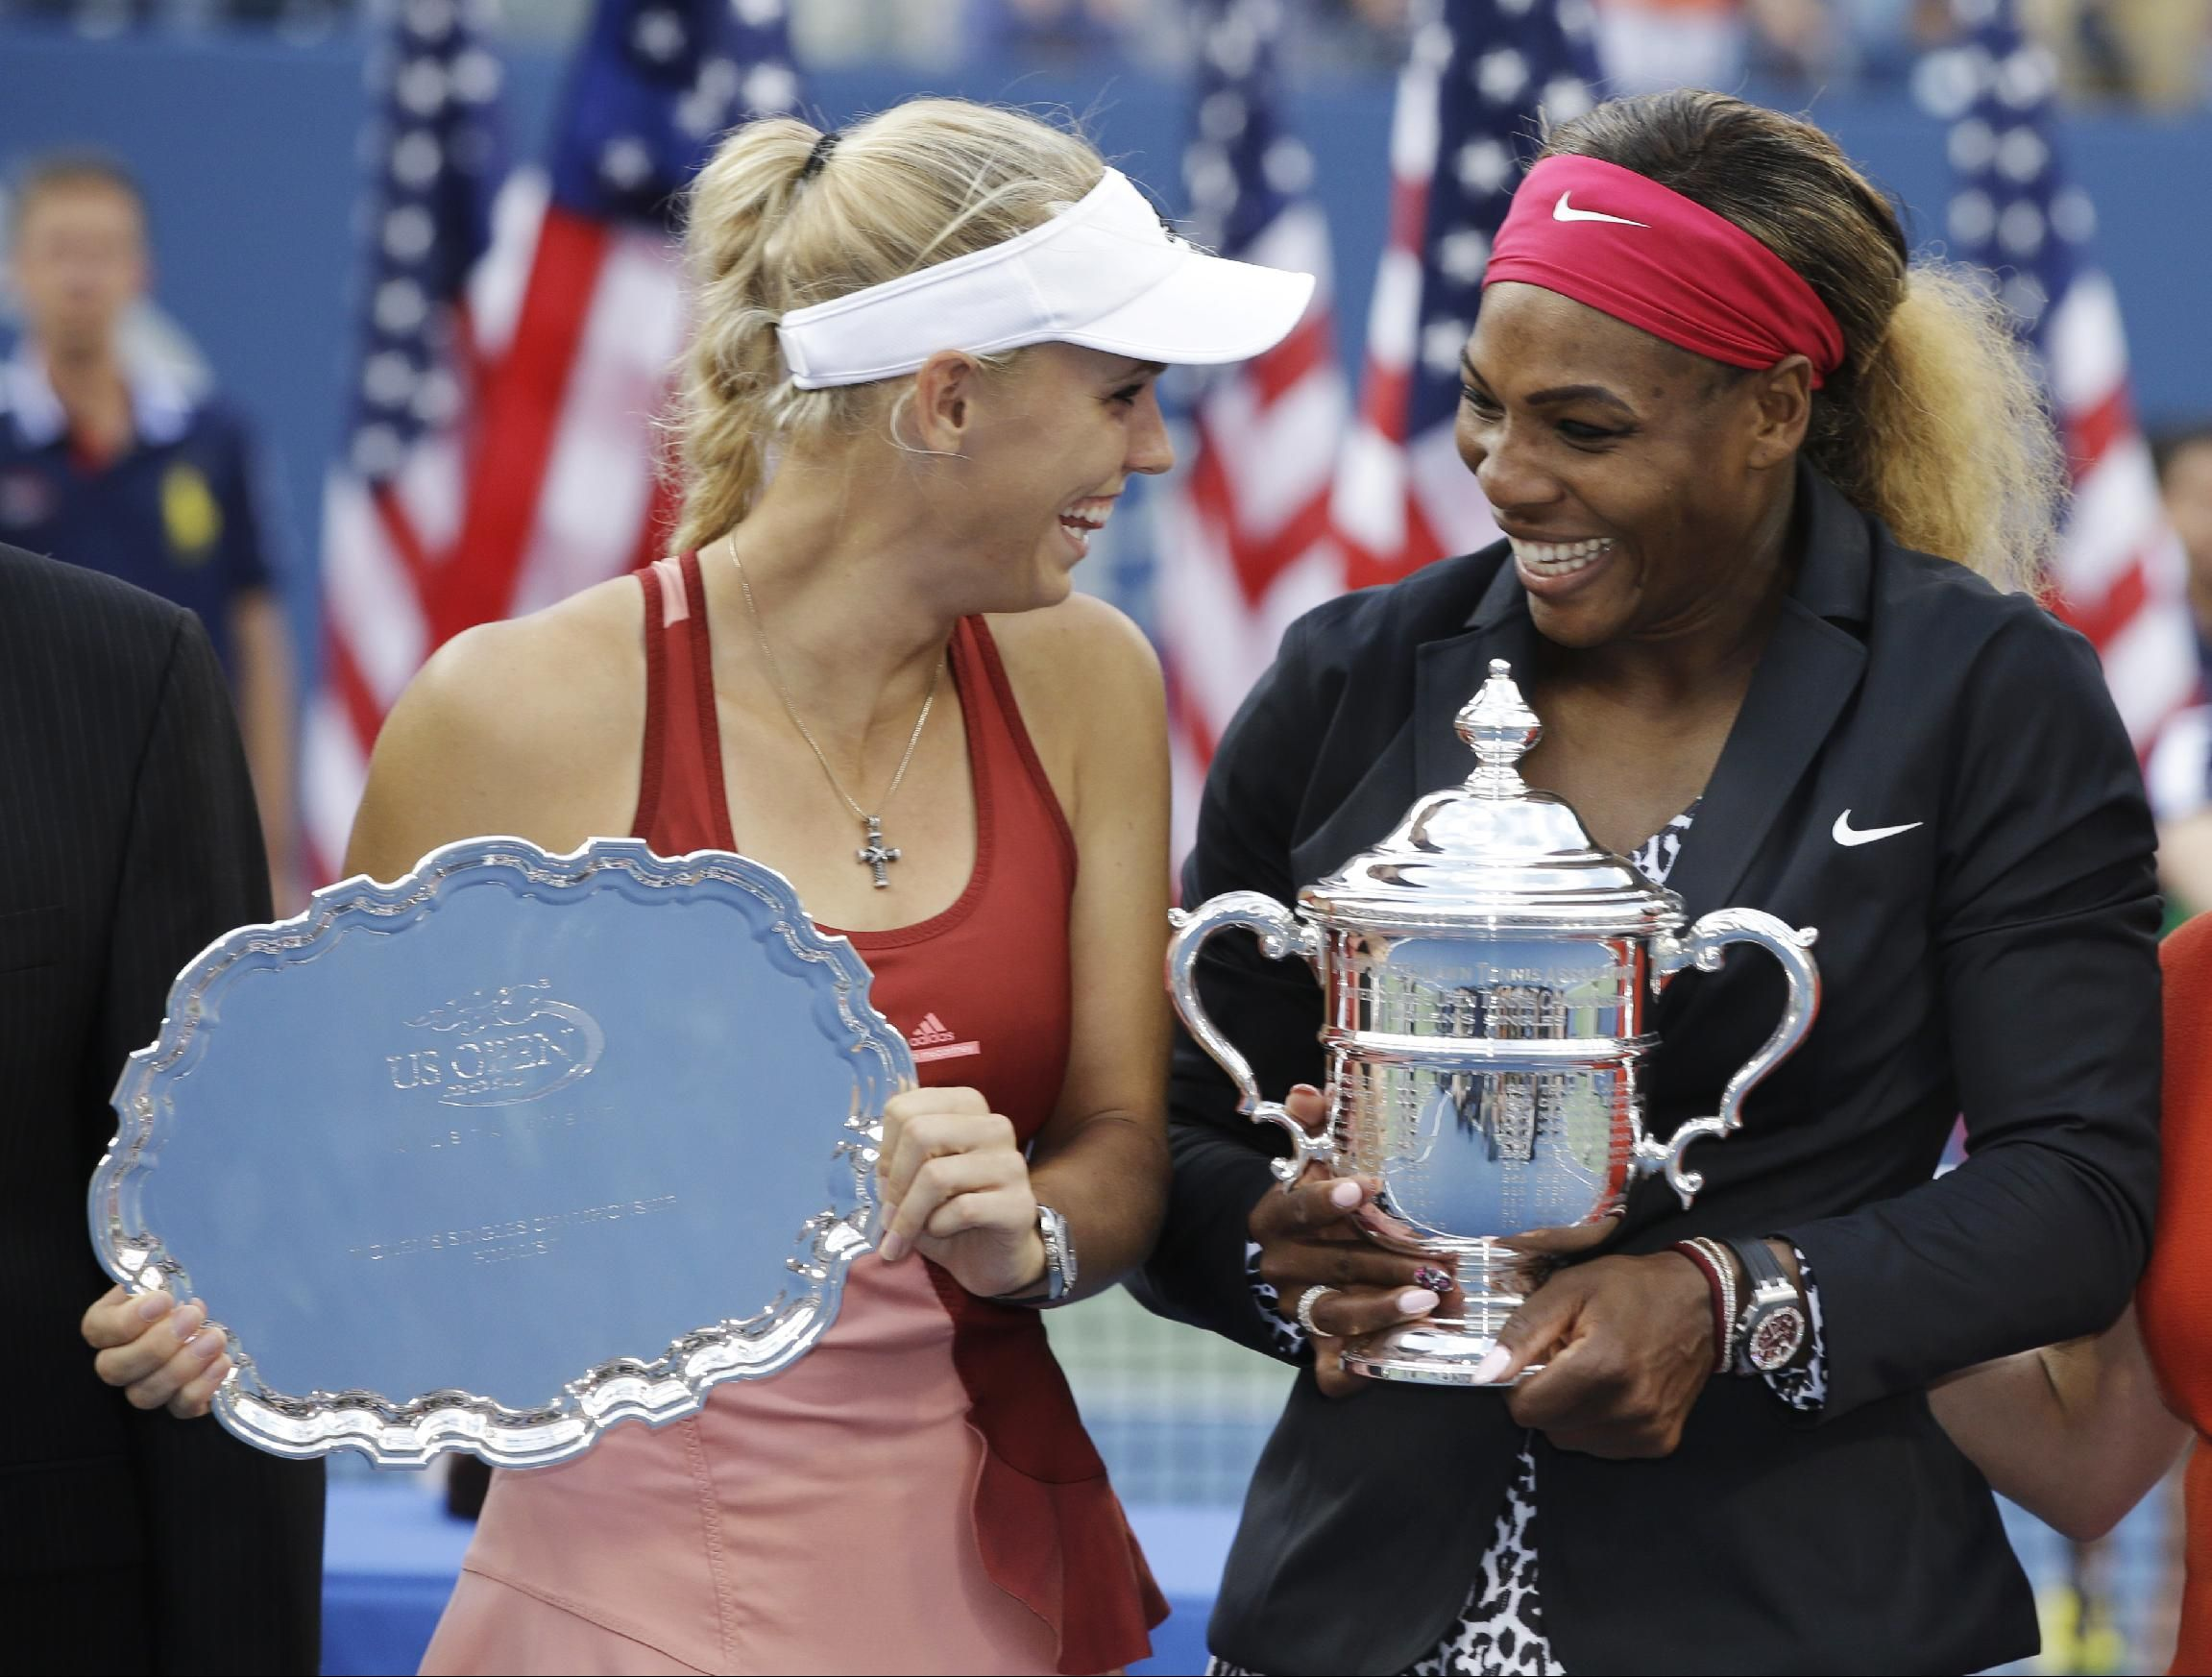 Caroline Wozniacki terá encontro de despedida com Serena Williams